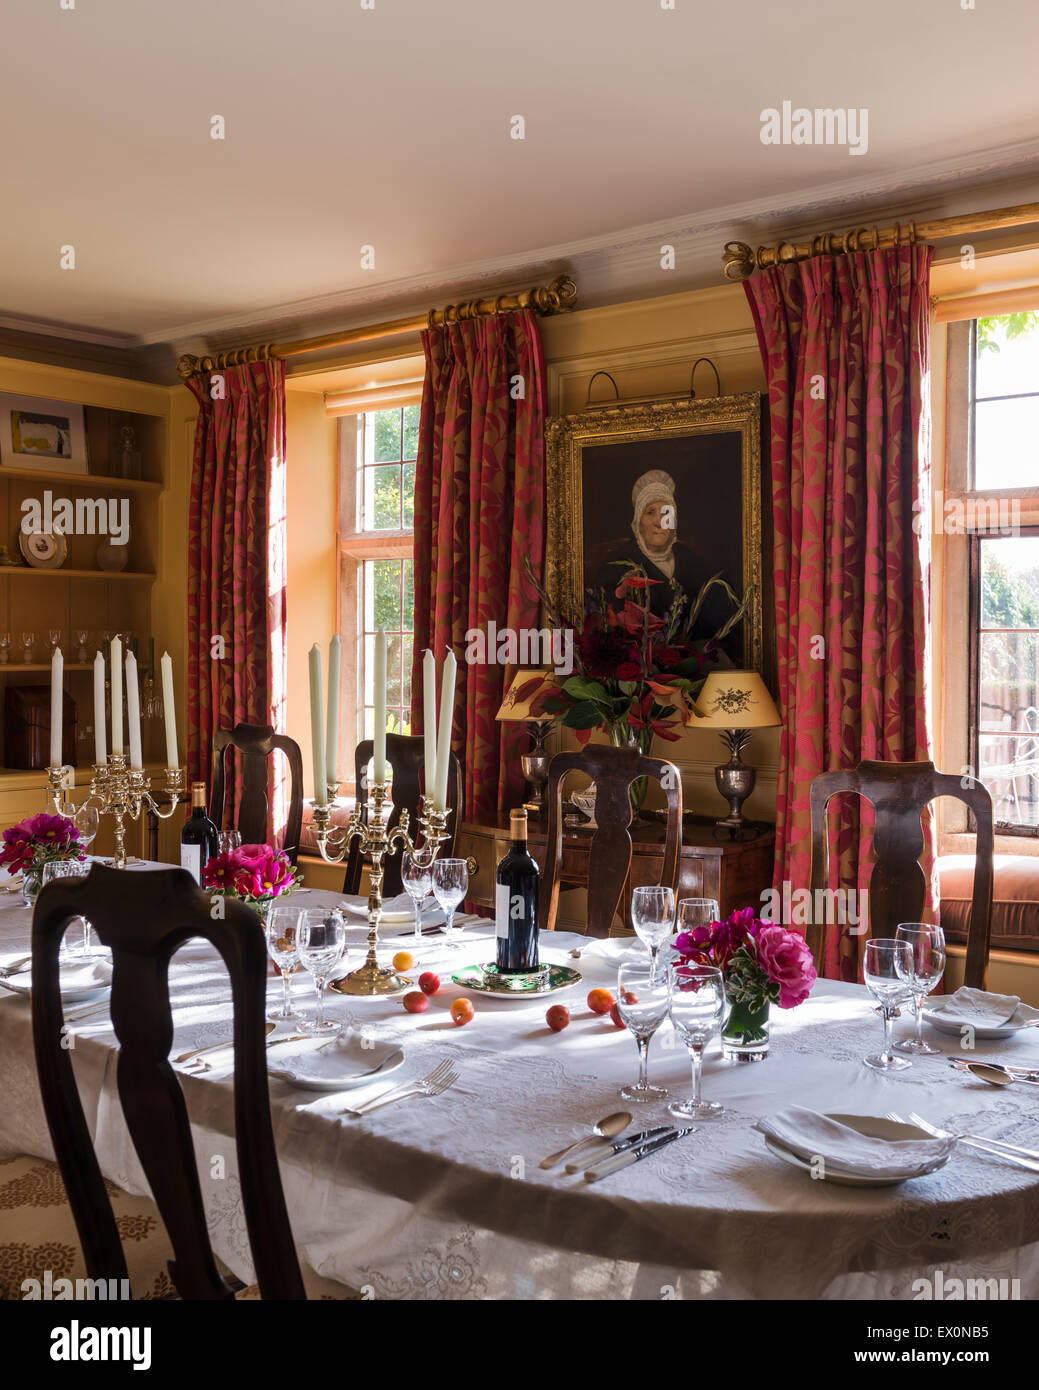 Gilt Framed Portait On Wall Of Dining Room With Candelabra And Floor Length Red Patterned Curtains